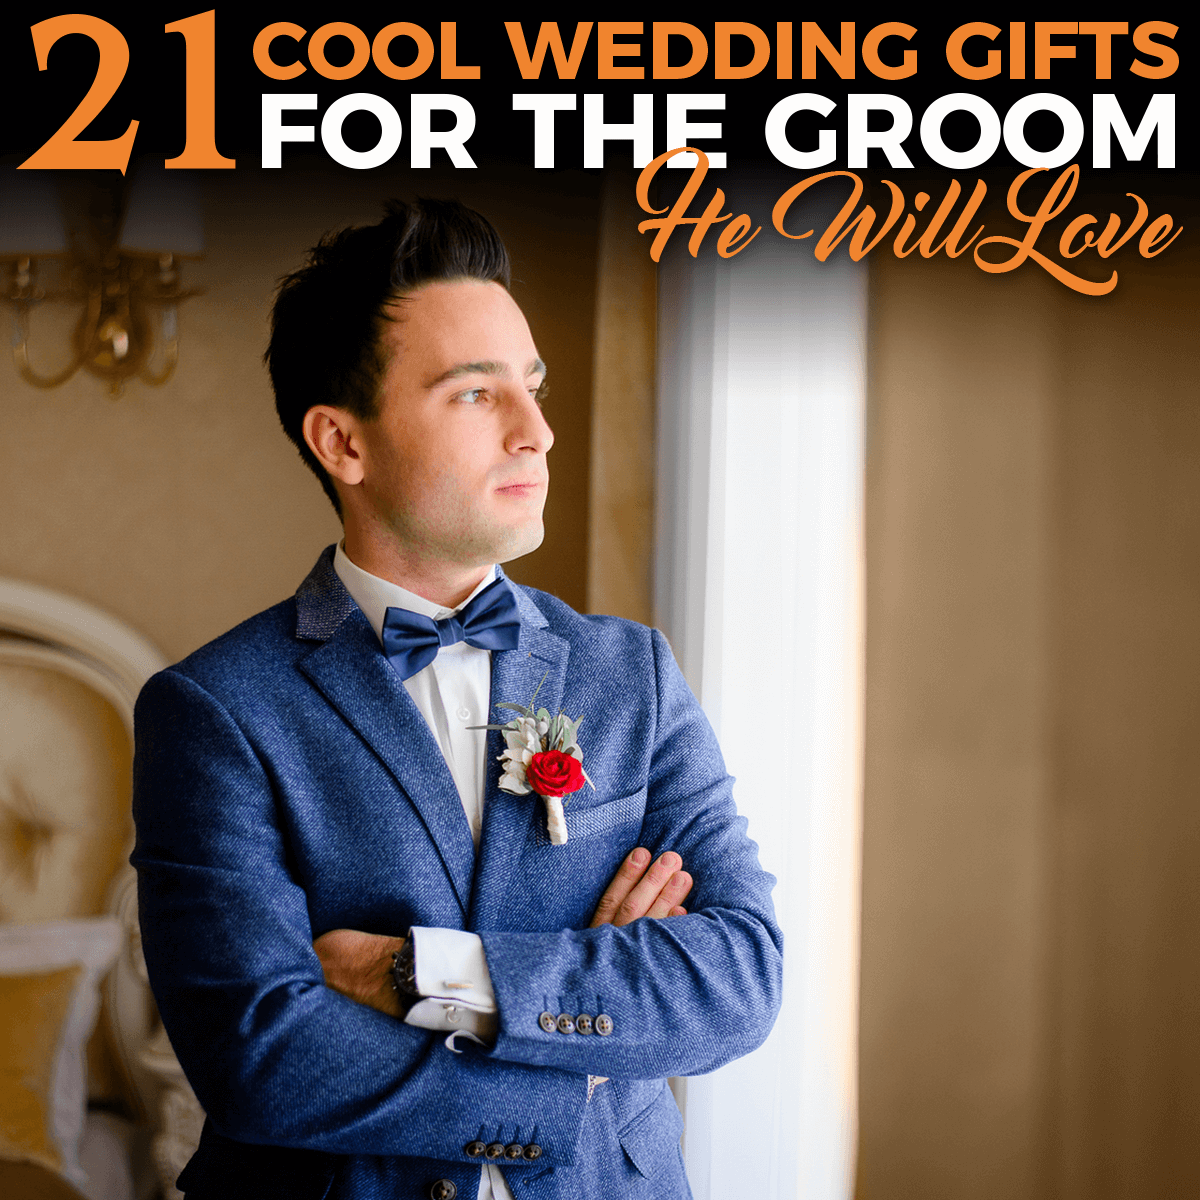 Best Wedding Gift For Groom: 21 Cool Wedding Gifts He Will Love